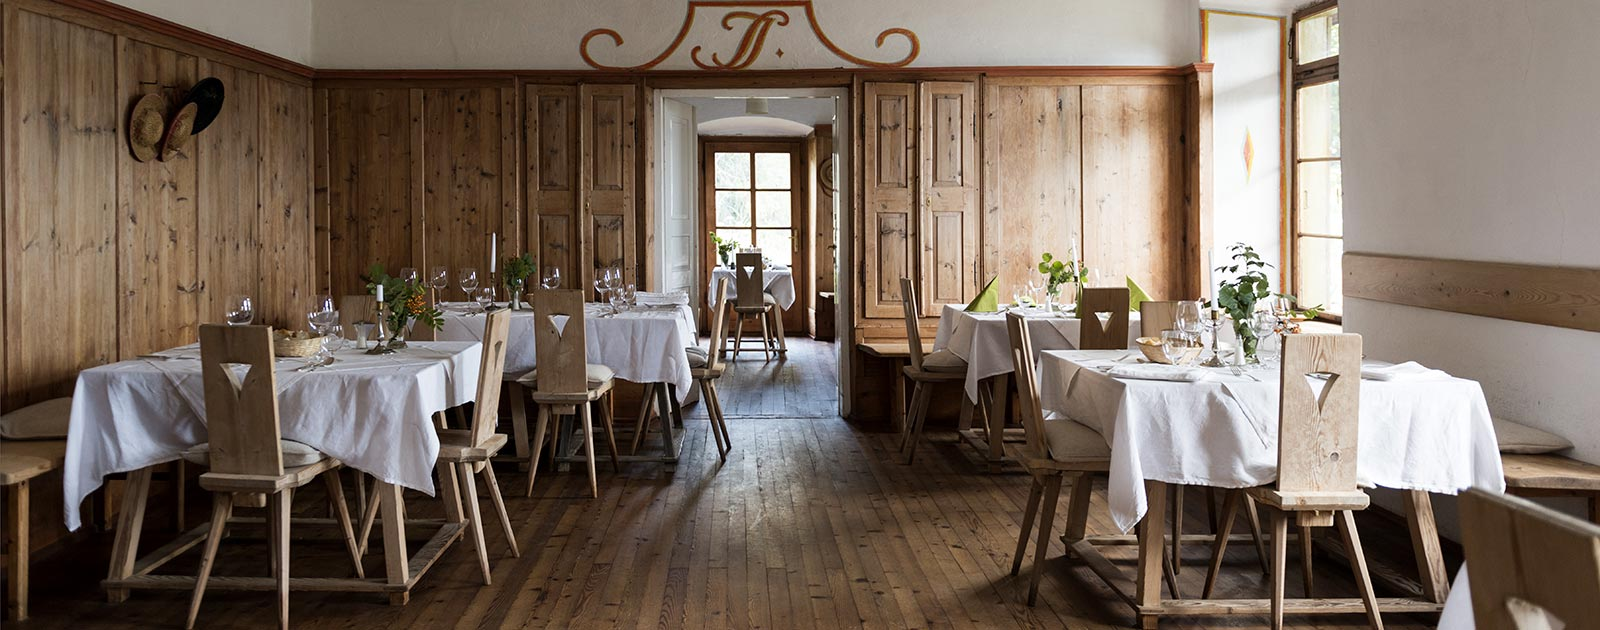 spacious dining room at Hotel Briol in Barbiano